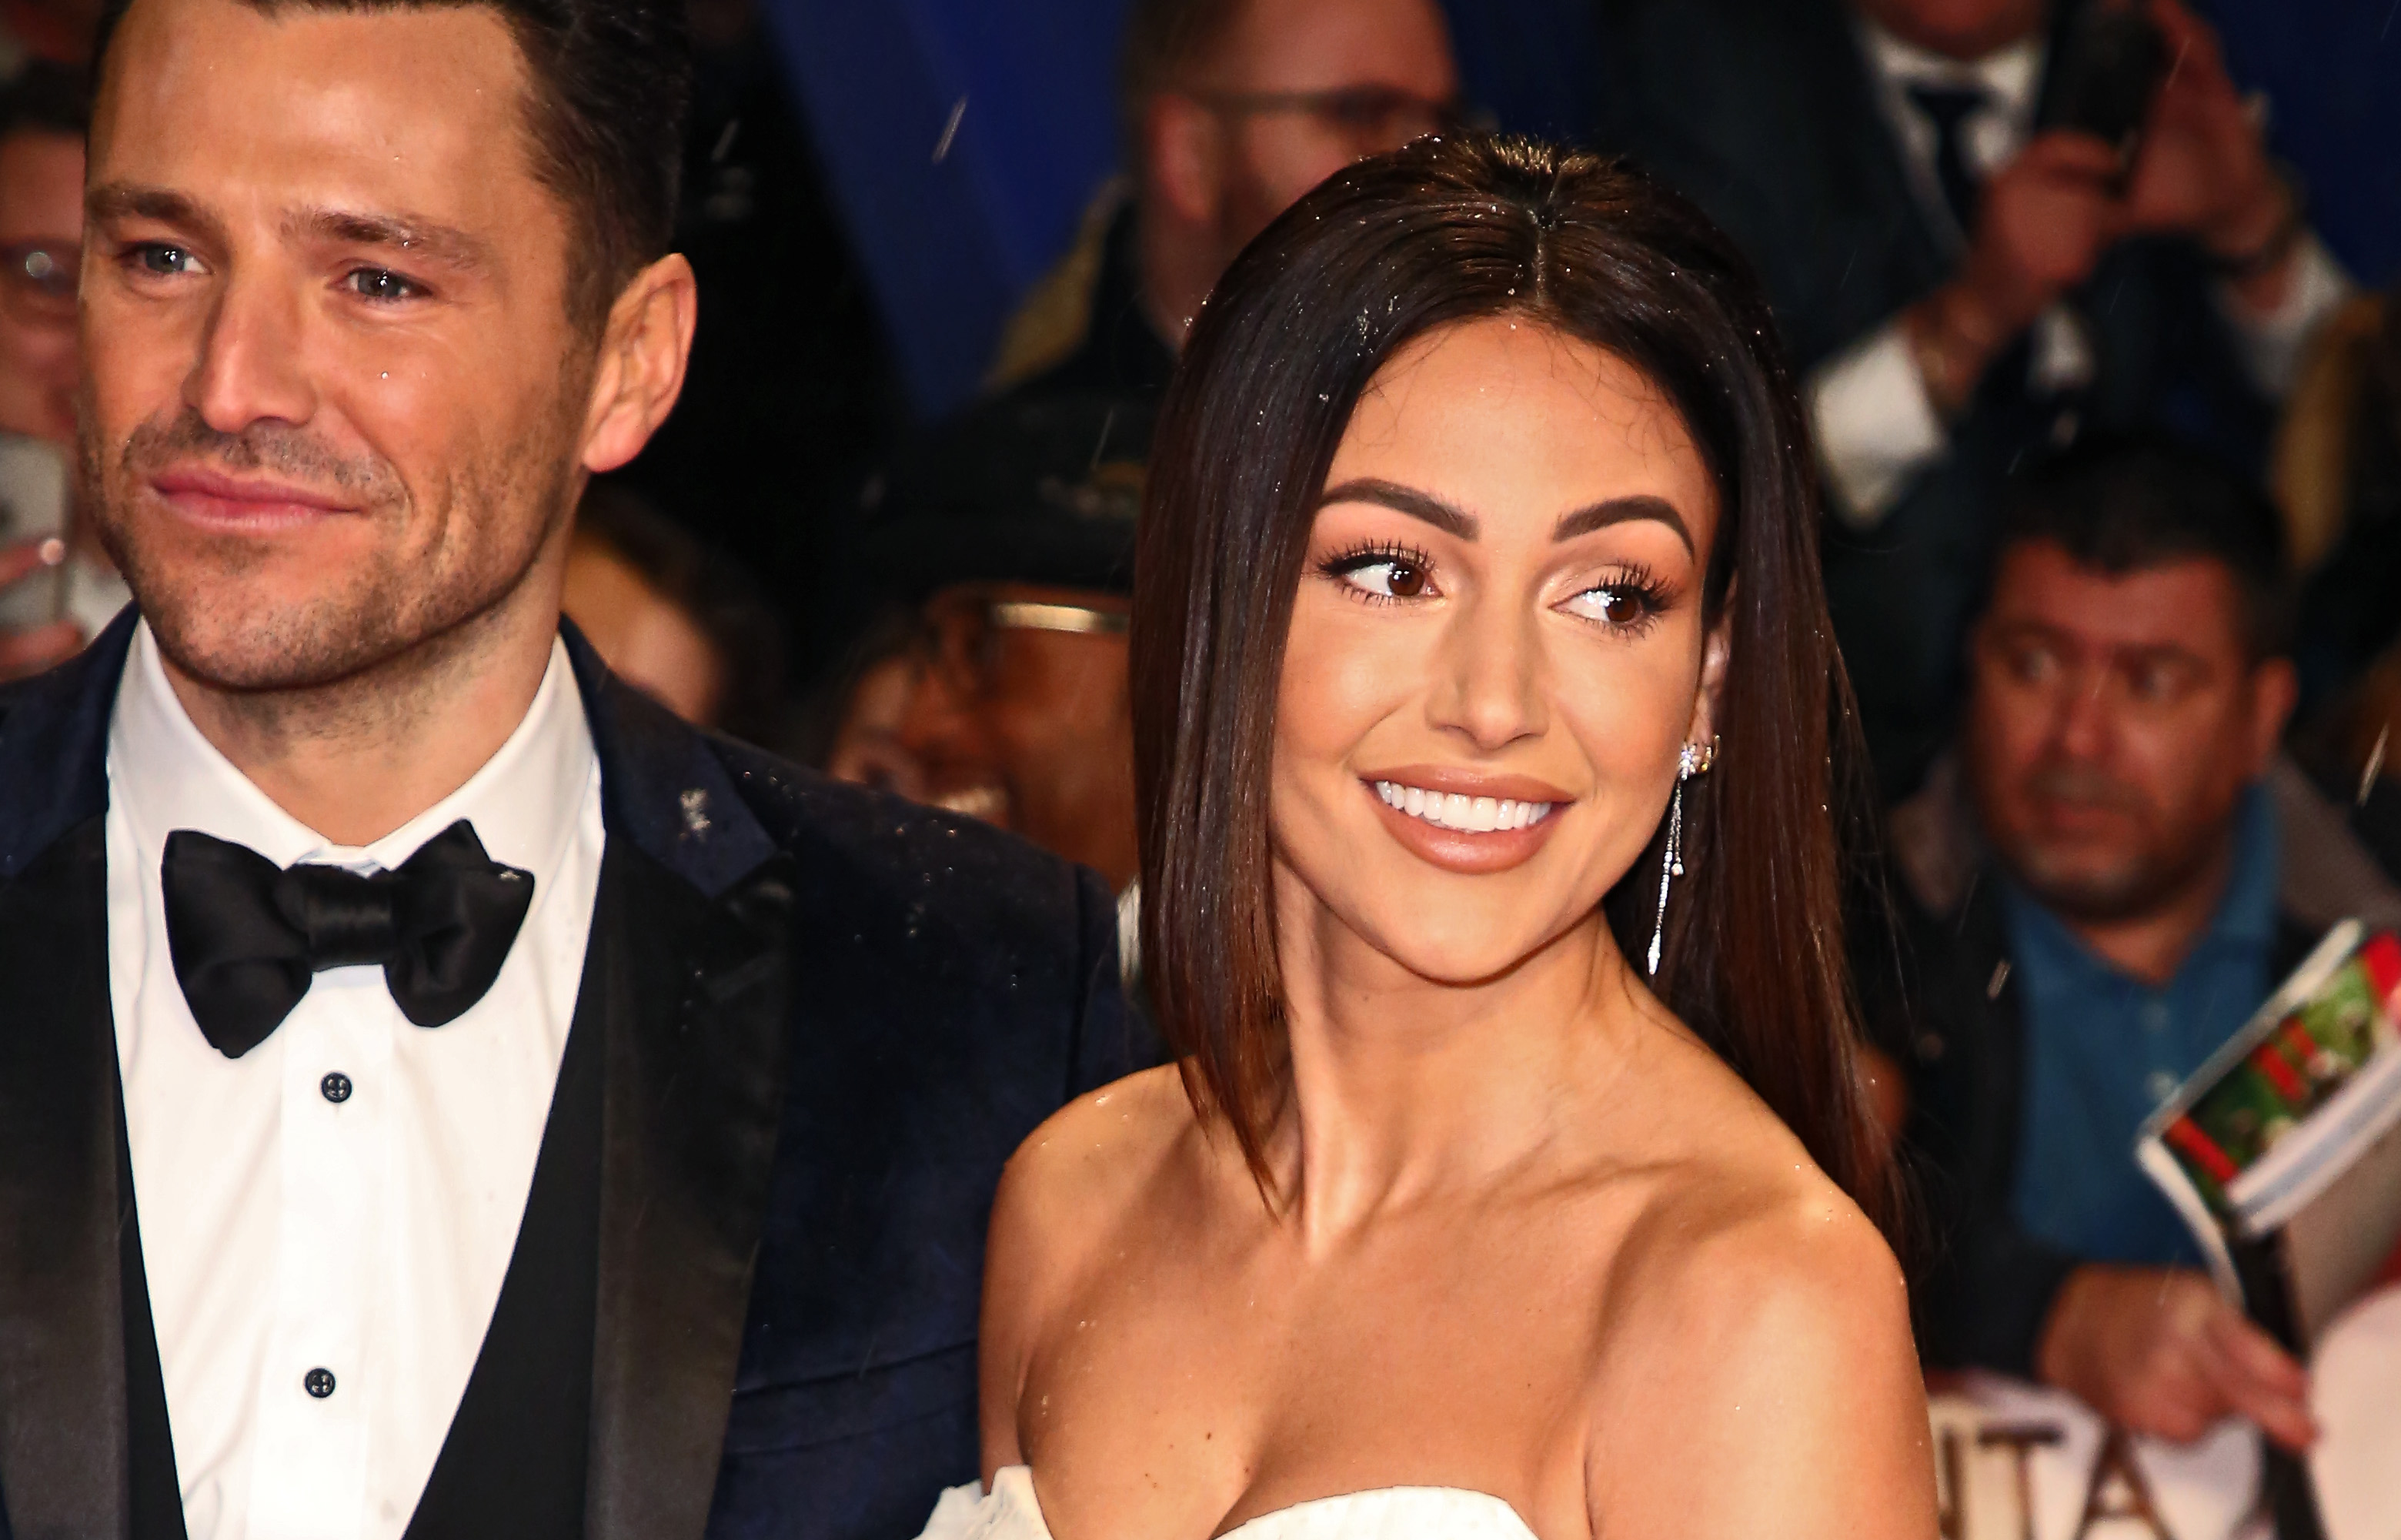 Mark Wright quits high-flying LA career to come home for wife Michelle Keegan